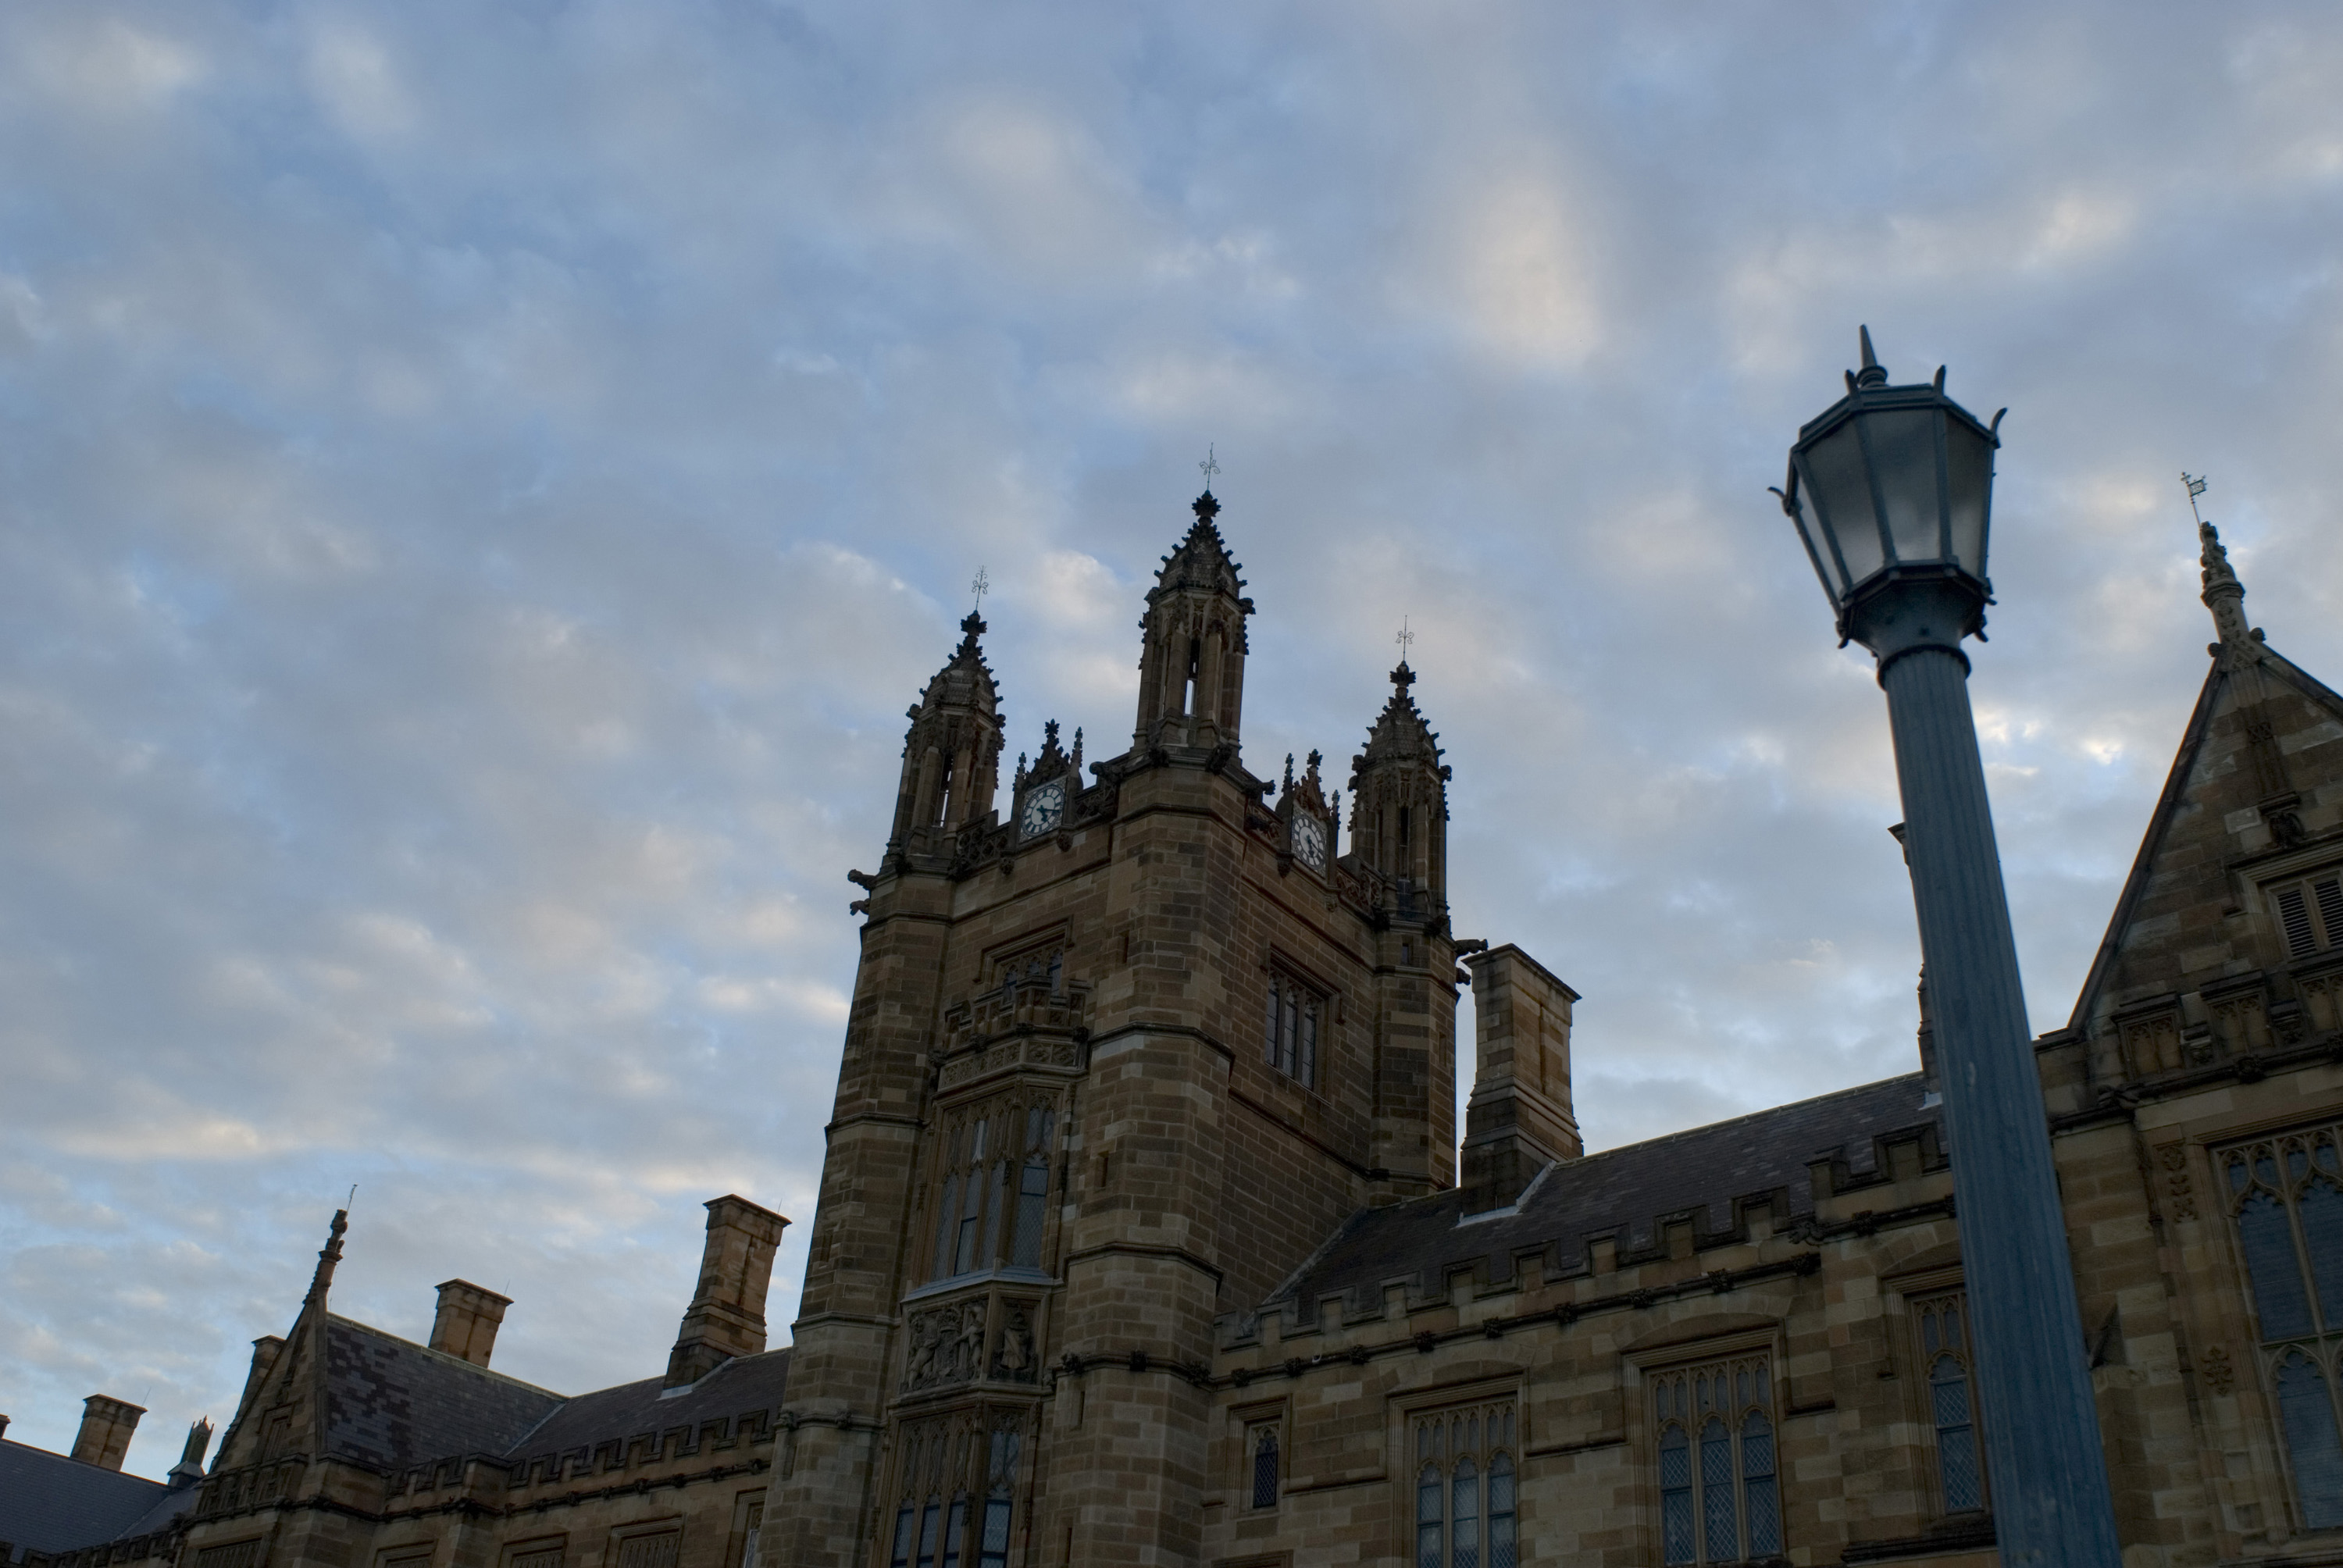 creepy looking shot of gothic revival university building